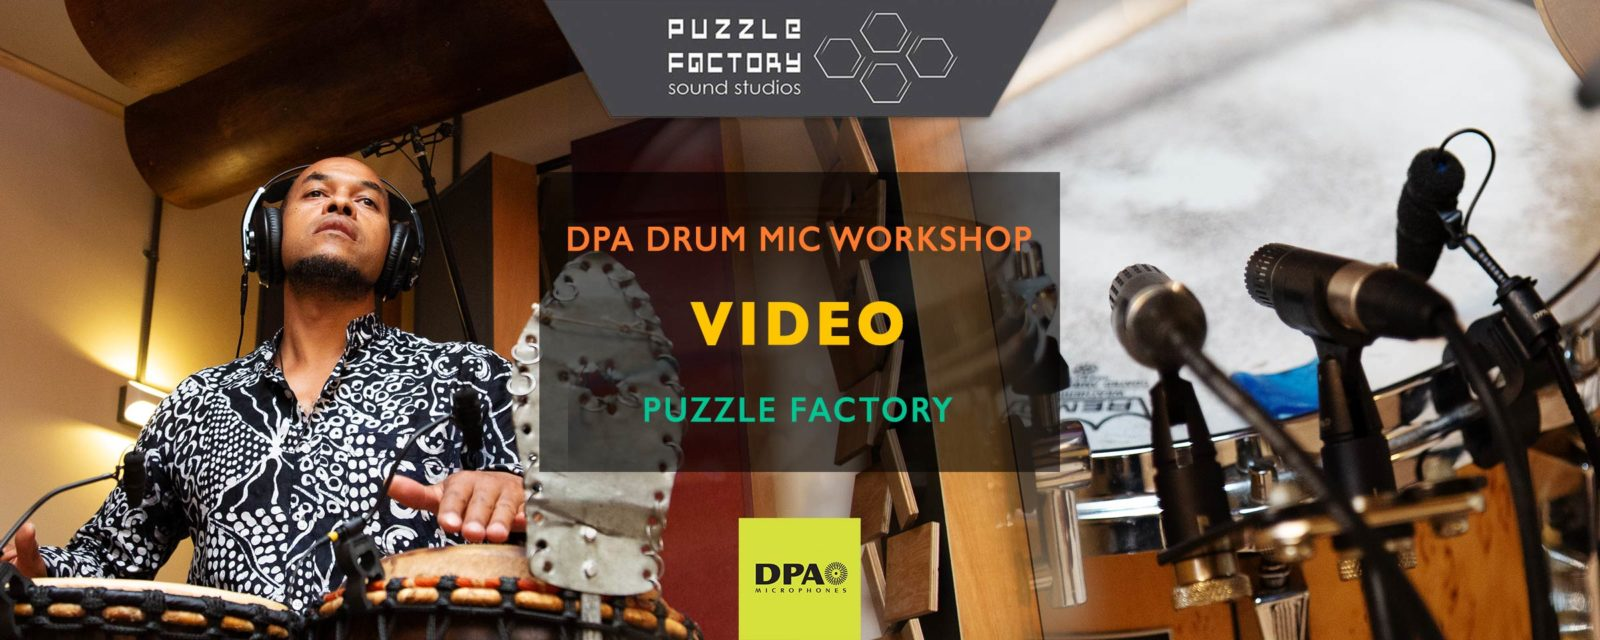 puzzle-factory-dpa-drum-workshop-20180906